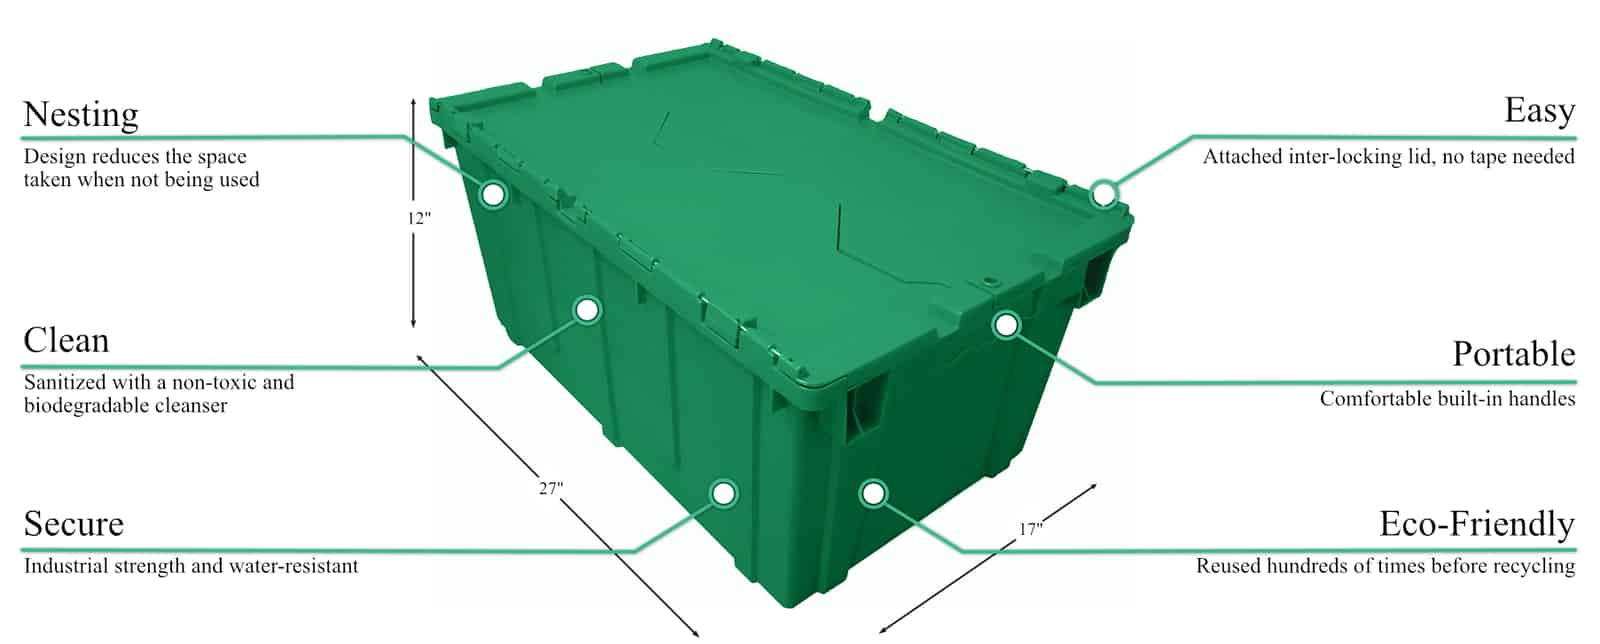 Rentable packing and moving bins are eco friendly, and safer and more convinient than cardboard moving boxes